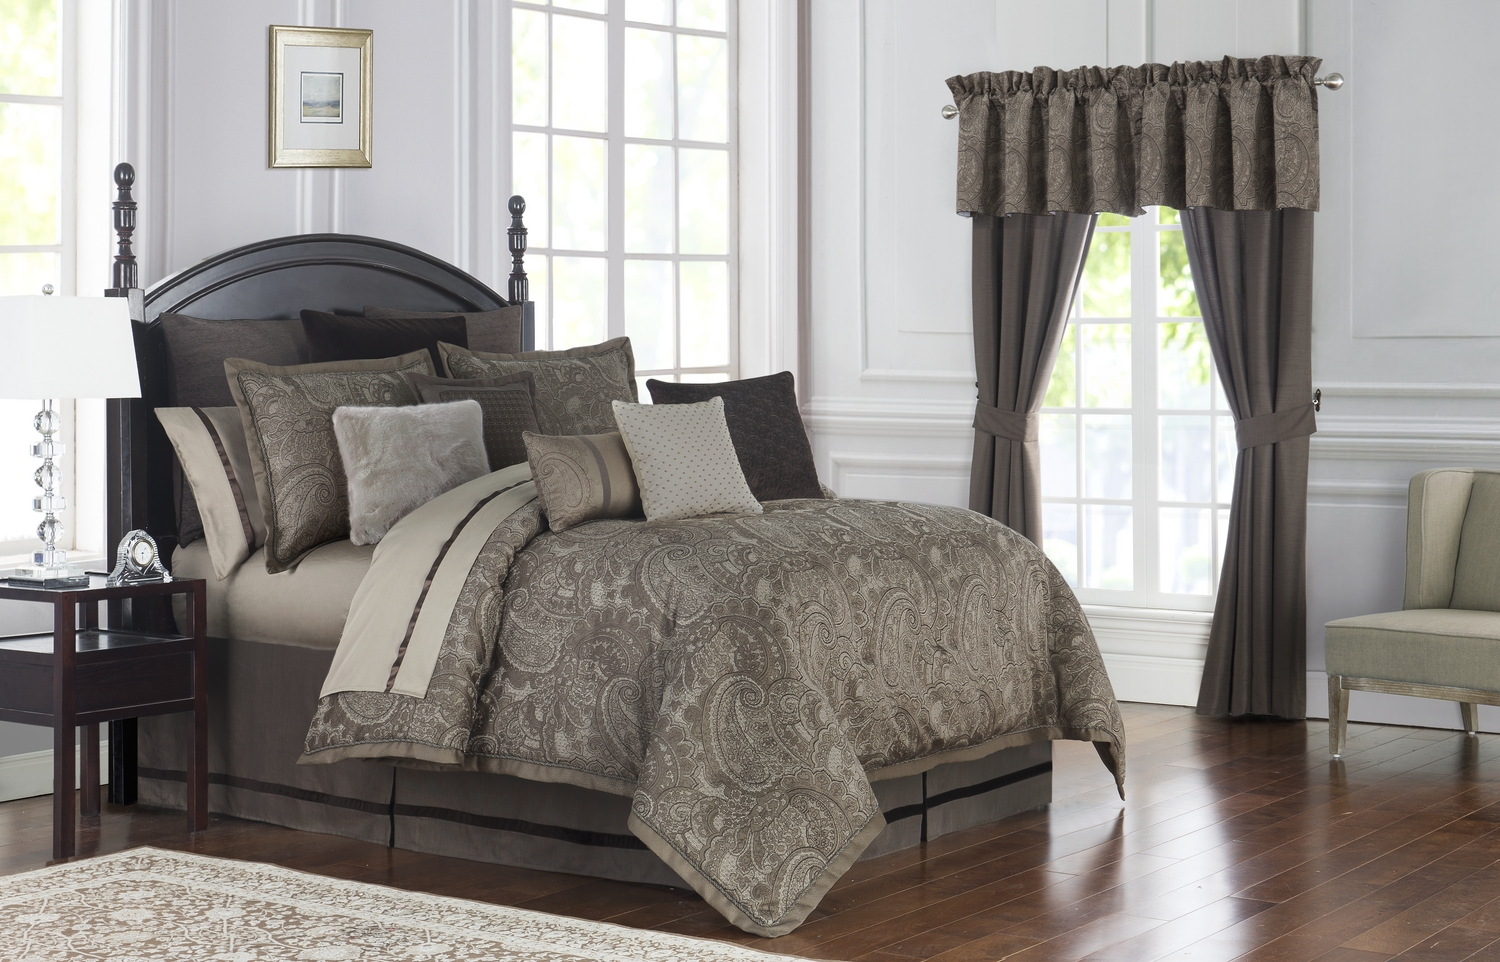 Glenmore Mink By Waterford Luxury Bedding